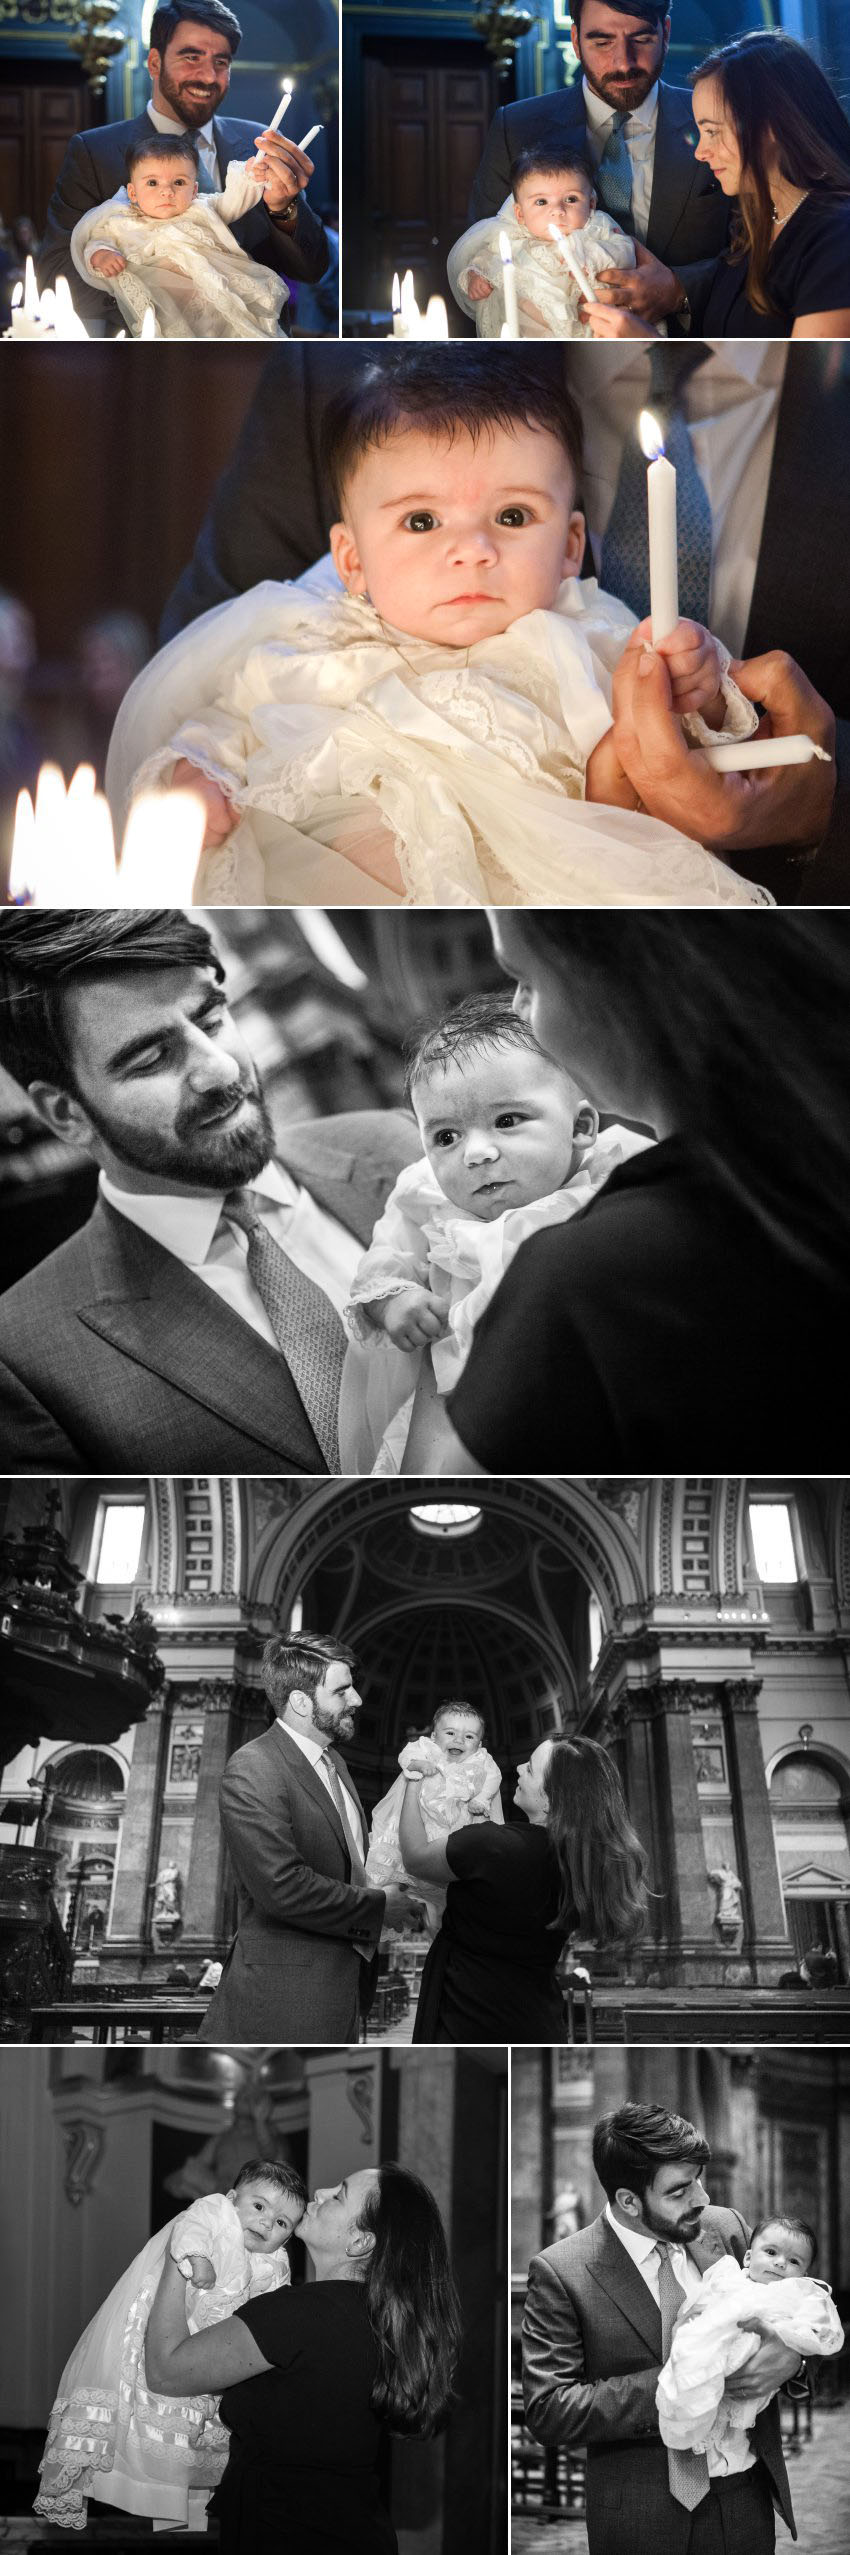 Christening videography and photography Brompton Oratory 05